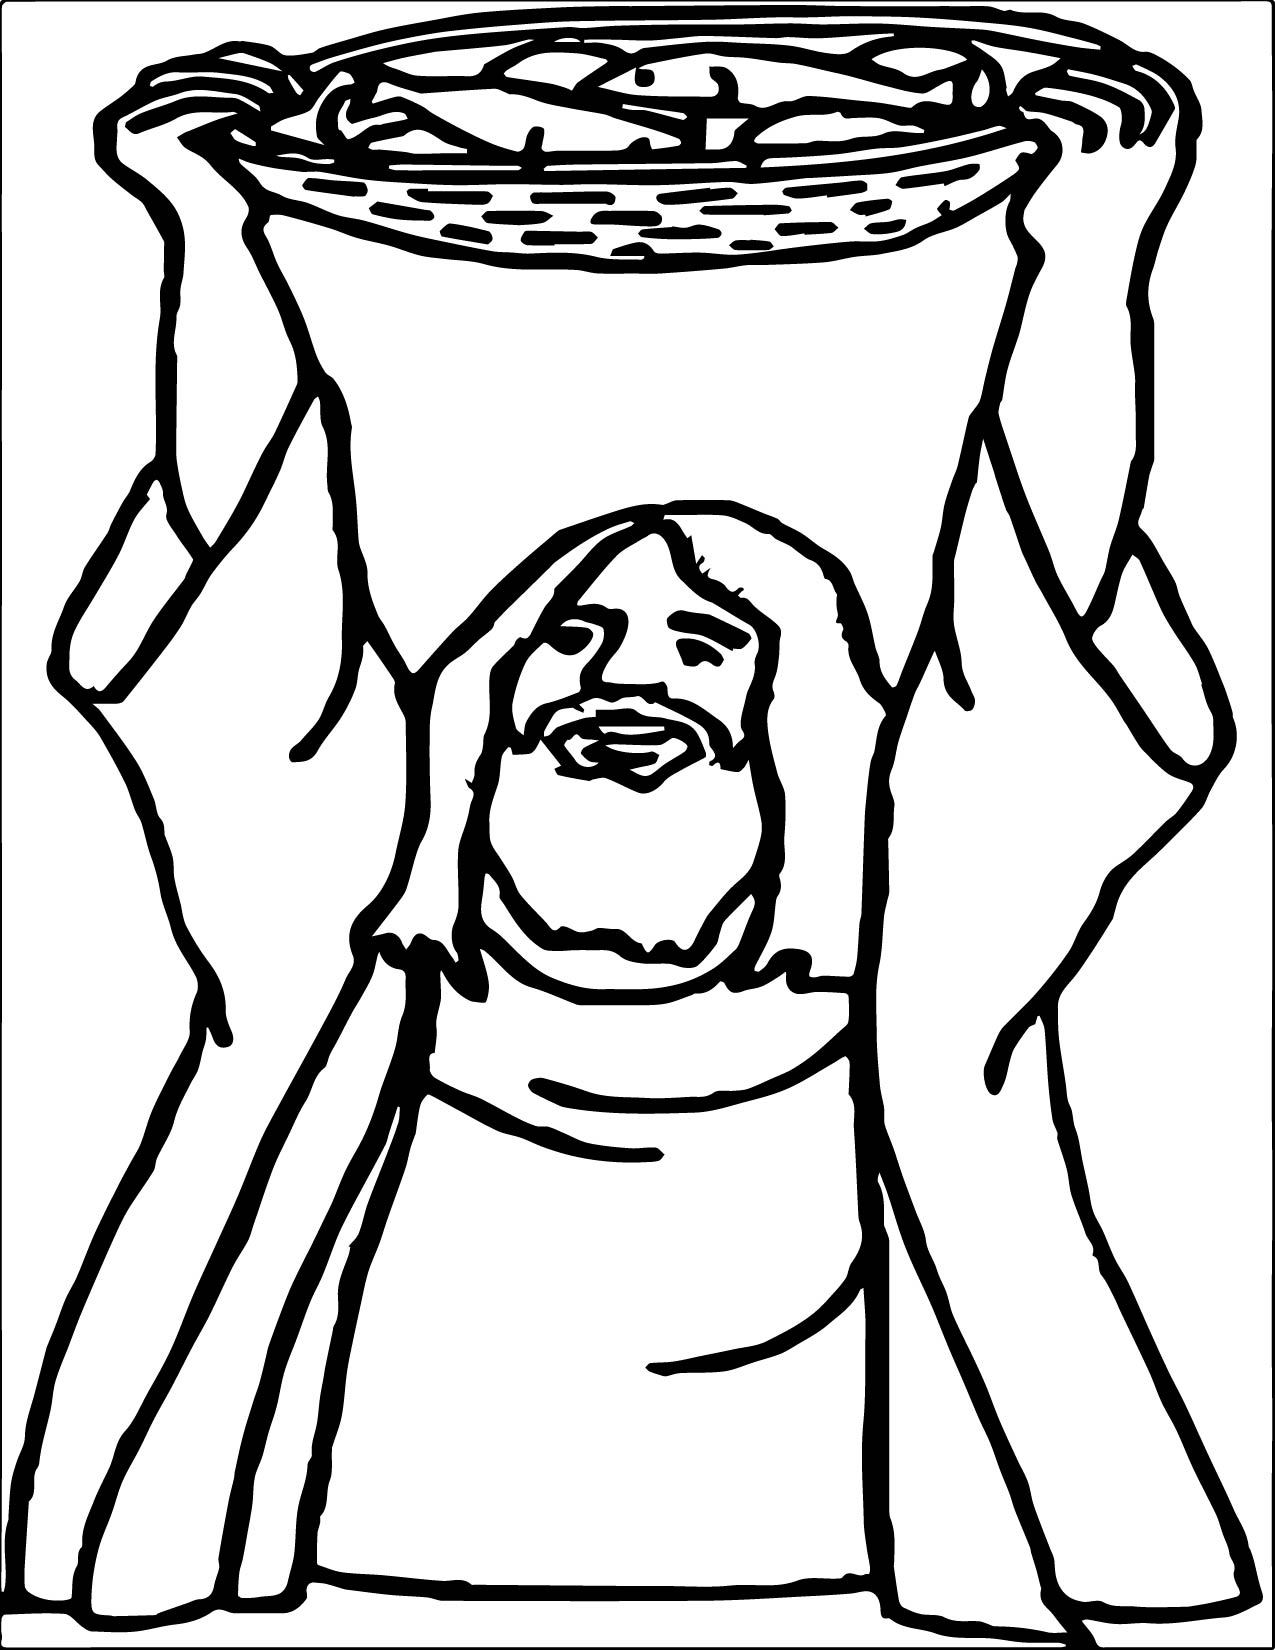 5 Loaves And 2 Fish God Prayer Coloring Page